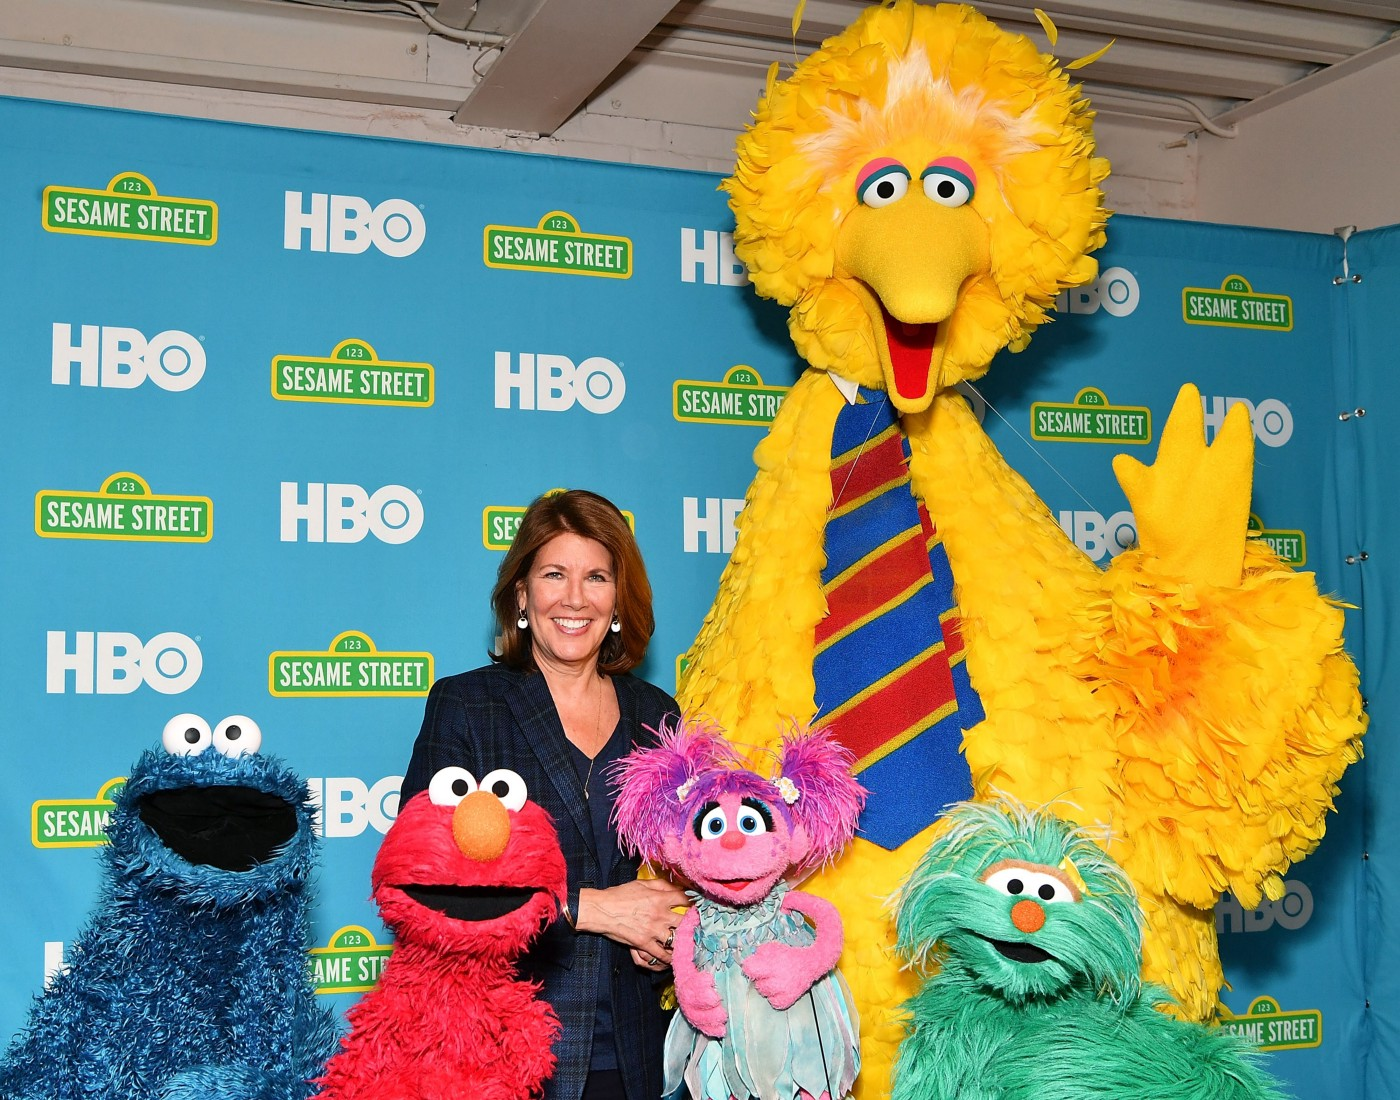 Sherrie Westin at the HBO Premiere of Sesame Street's The Magical Wand Chase, posing with Big Bird, Elmo, and Cookie Monster.